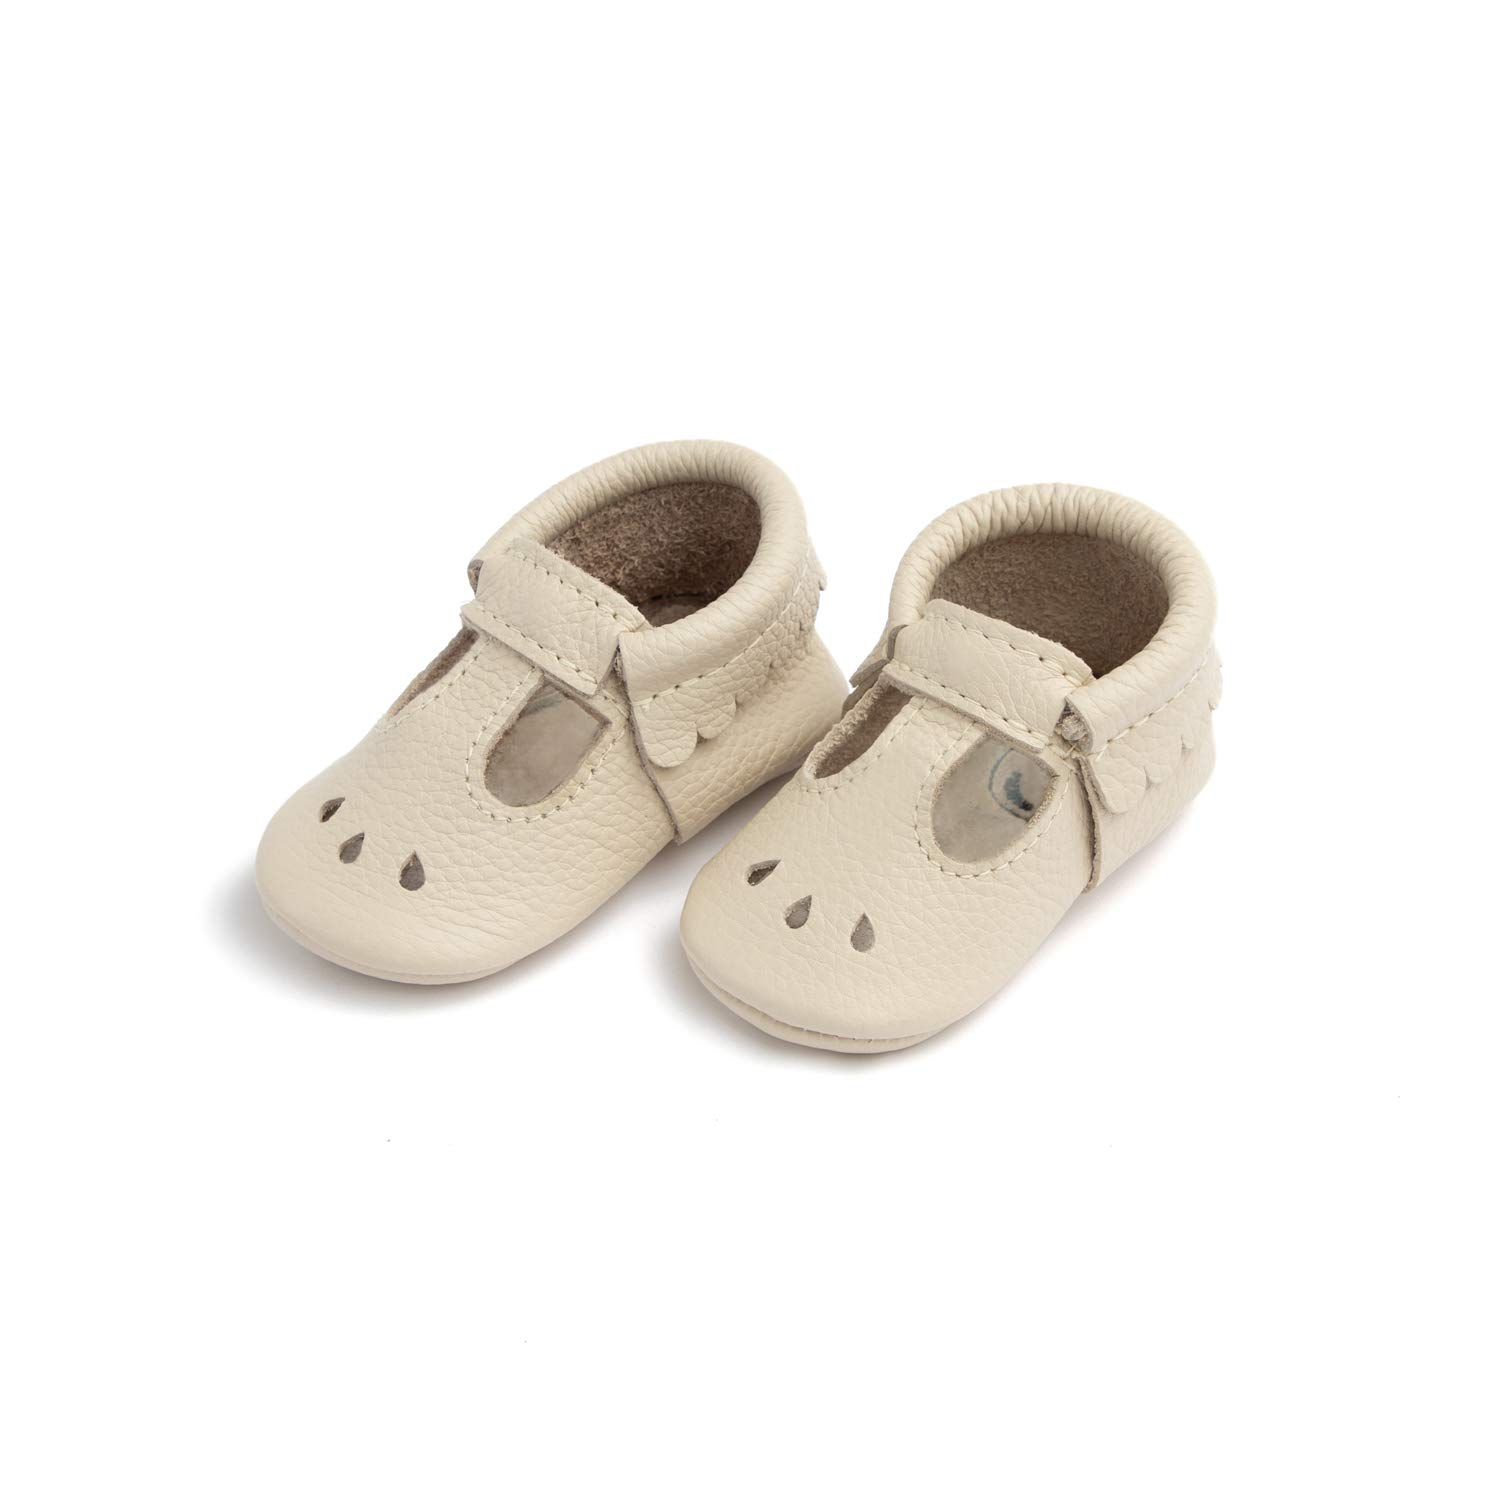 Freshly Picked Toddler Girl Shoes Rubber Mini Sole Leather Mary Jane Moccasins Infant//Toddler Sizes 3-7 Multiple Colors